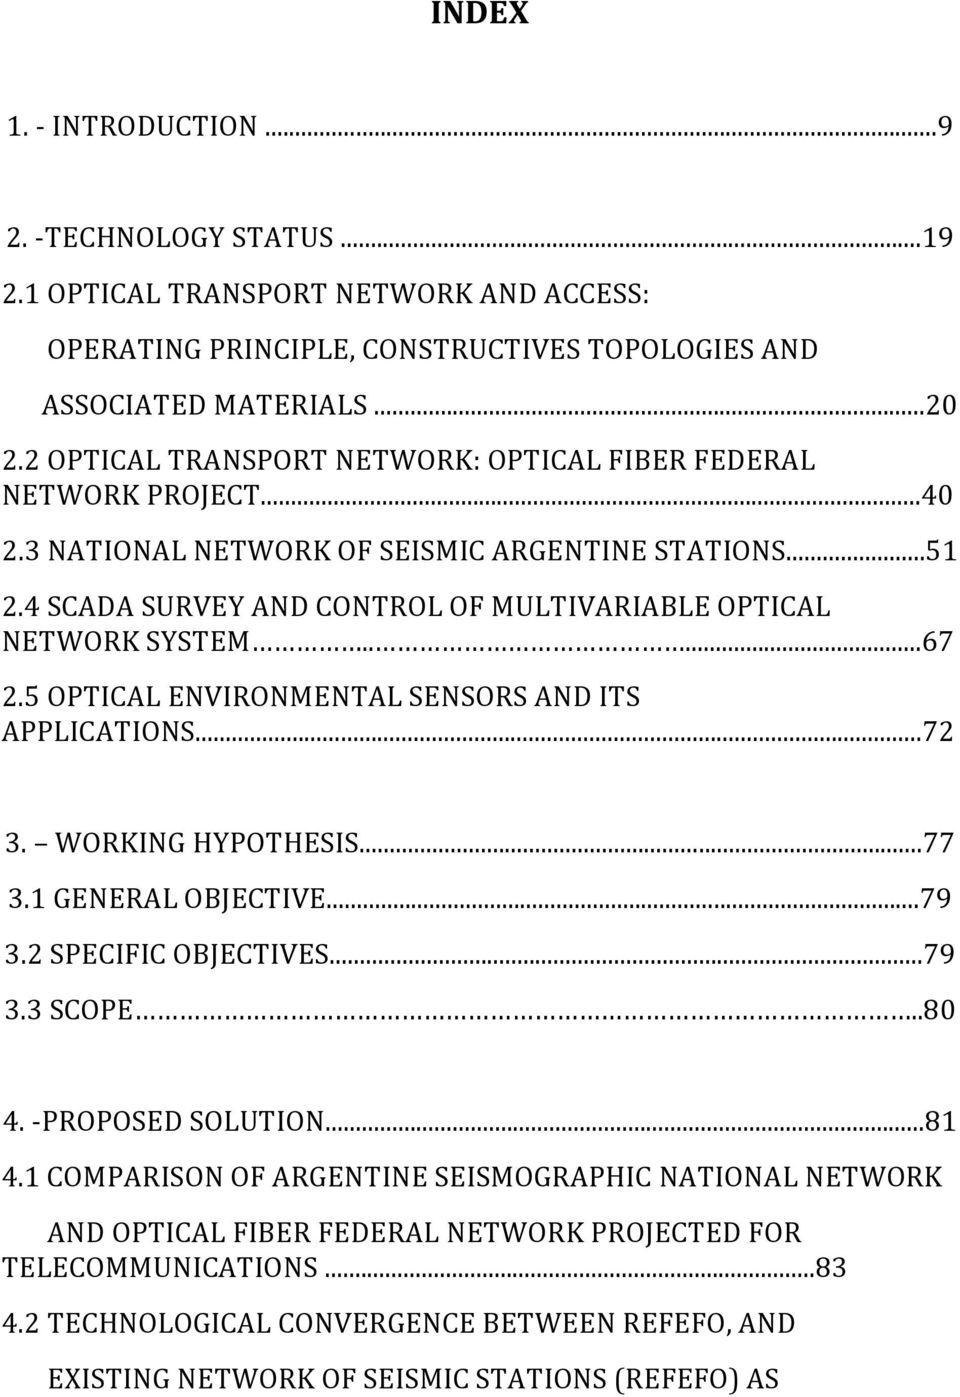 ....67 2.5 OPTICAL ENVIRONMENTAL SENSORS AND ITS APPLICATIONS...72 3. WORKING HYPOTHESIS...77 3.1 GENERAL OBJECTIVE...79 3.2 SPECIFIC OBJECTIVES...79 3.3 SCOPE..80 4. -PROPOSED SOLUTION...81 4.